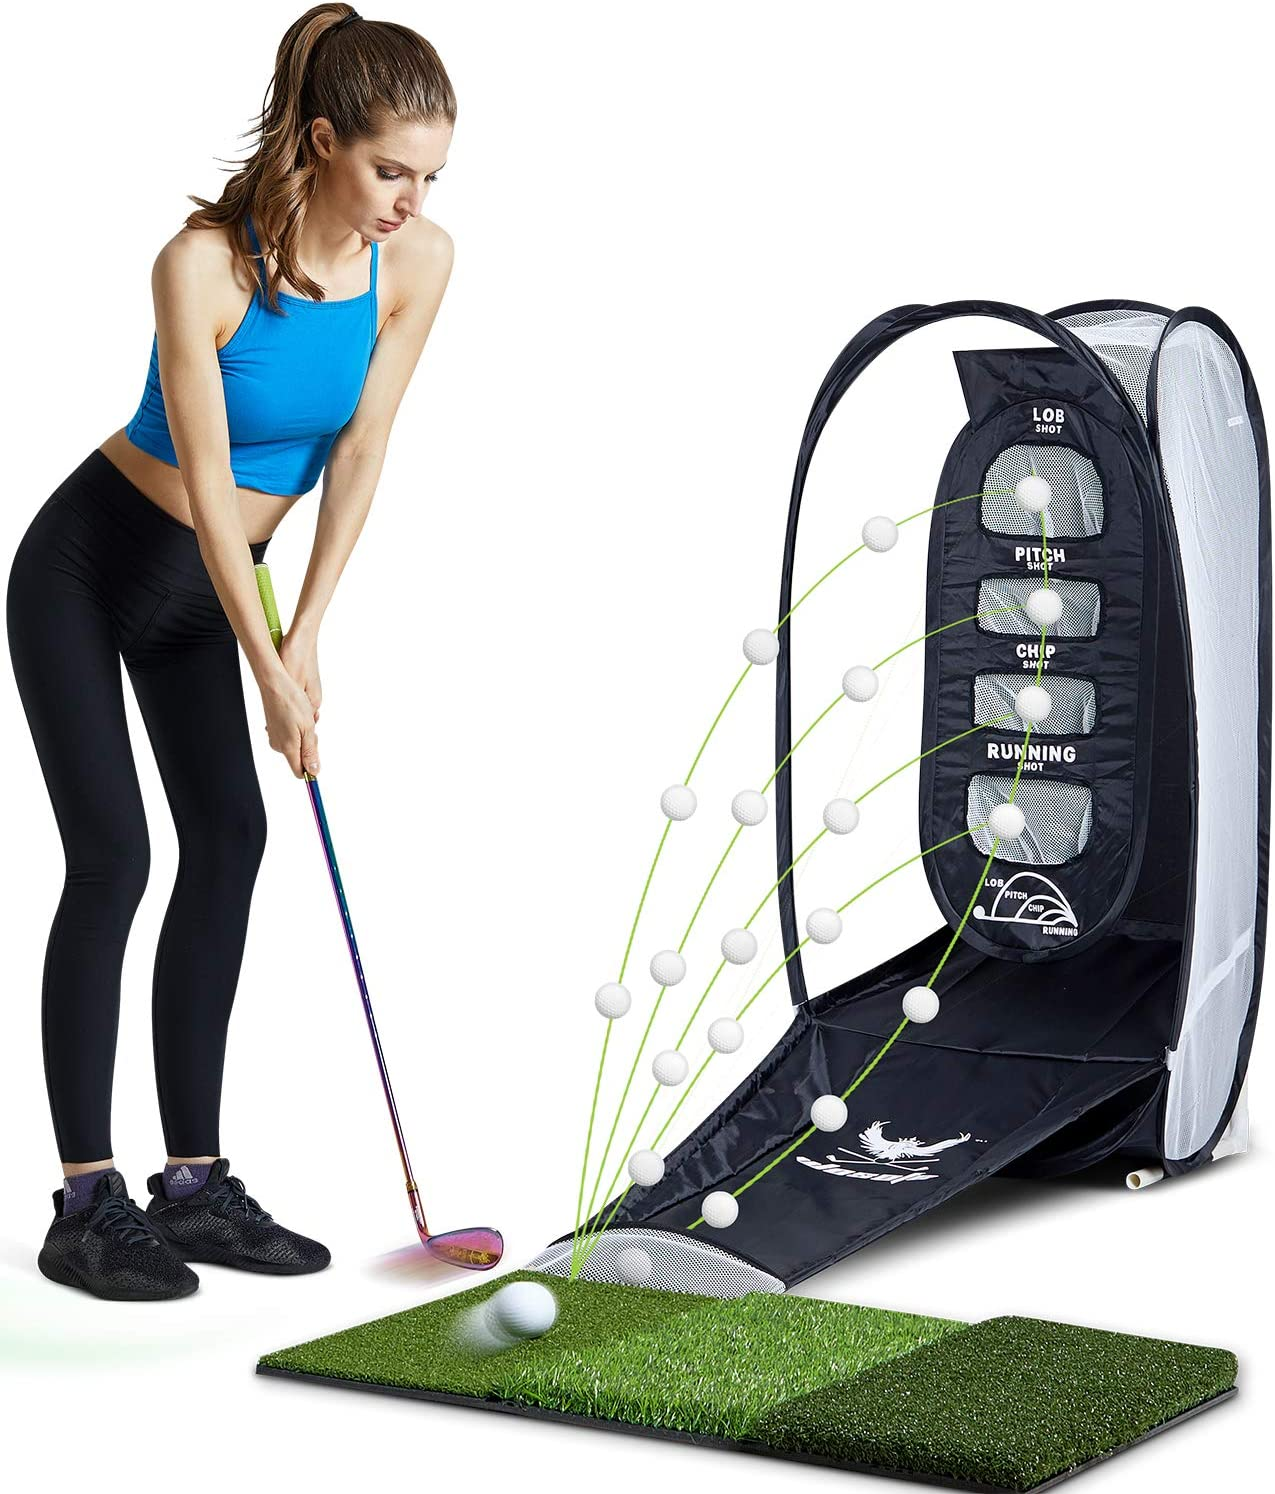 wosofe Golf Practice Hitting Net Indoor Backyard Home Chipping 2 Target and Ball Swing Training Aids